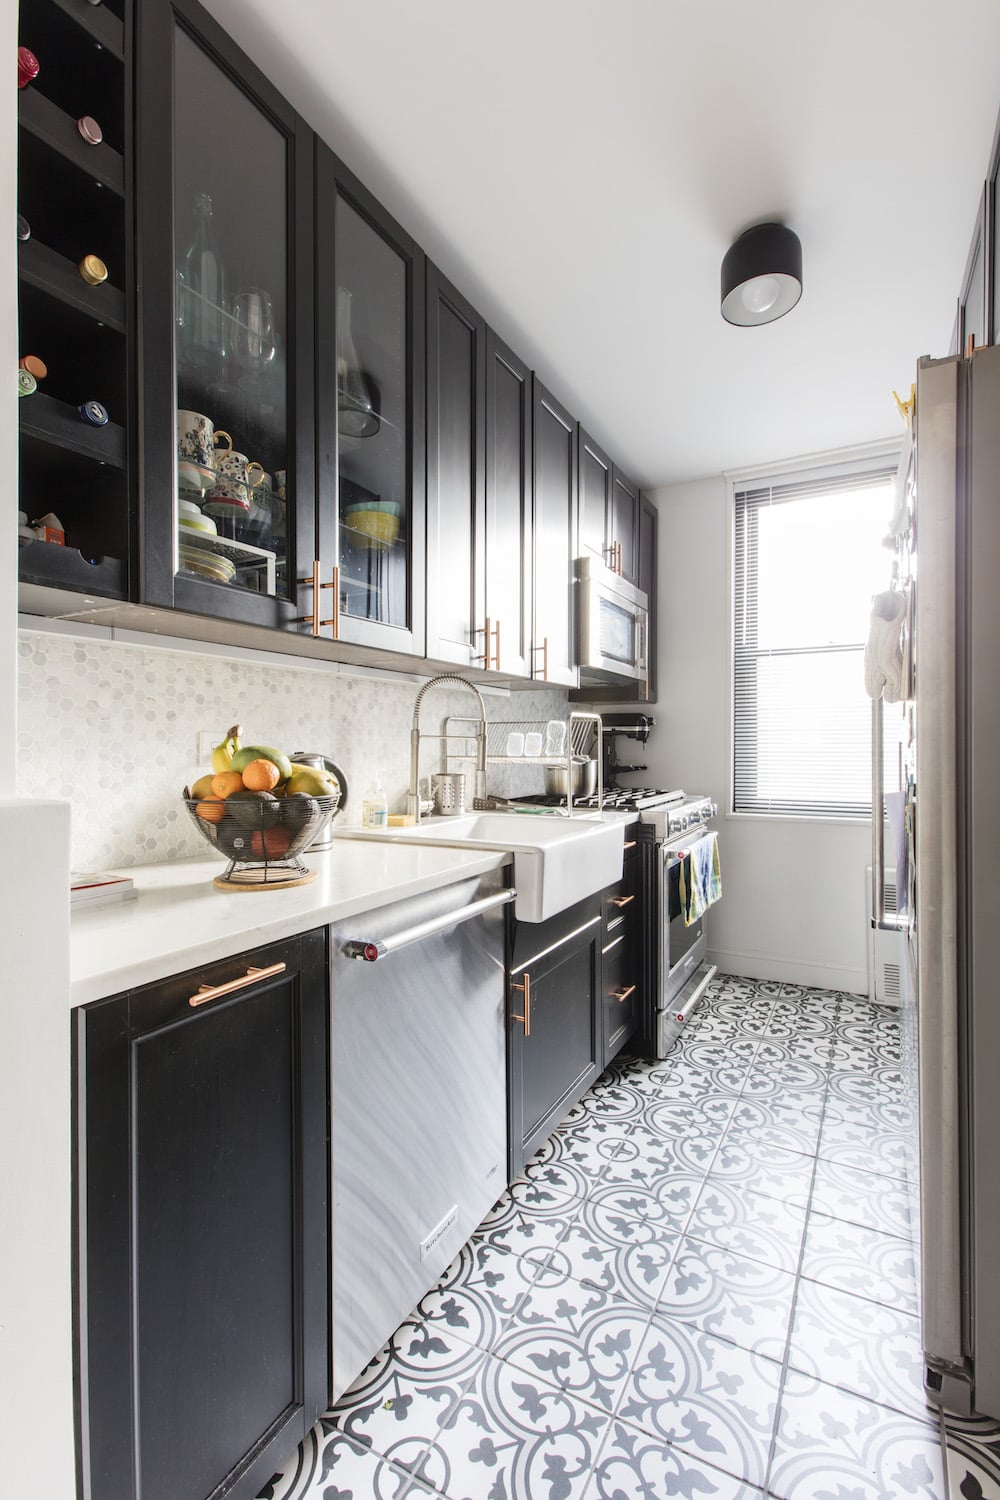 Glass Cabinet Doors Small Kitchen Big Hacks Transform Your Space With Little Effort Popsugar Home Photo 15